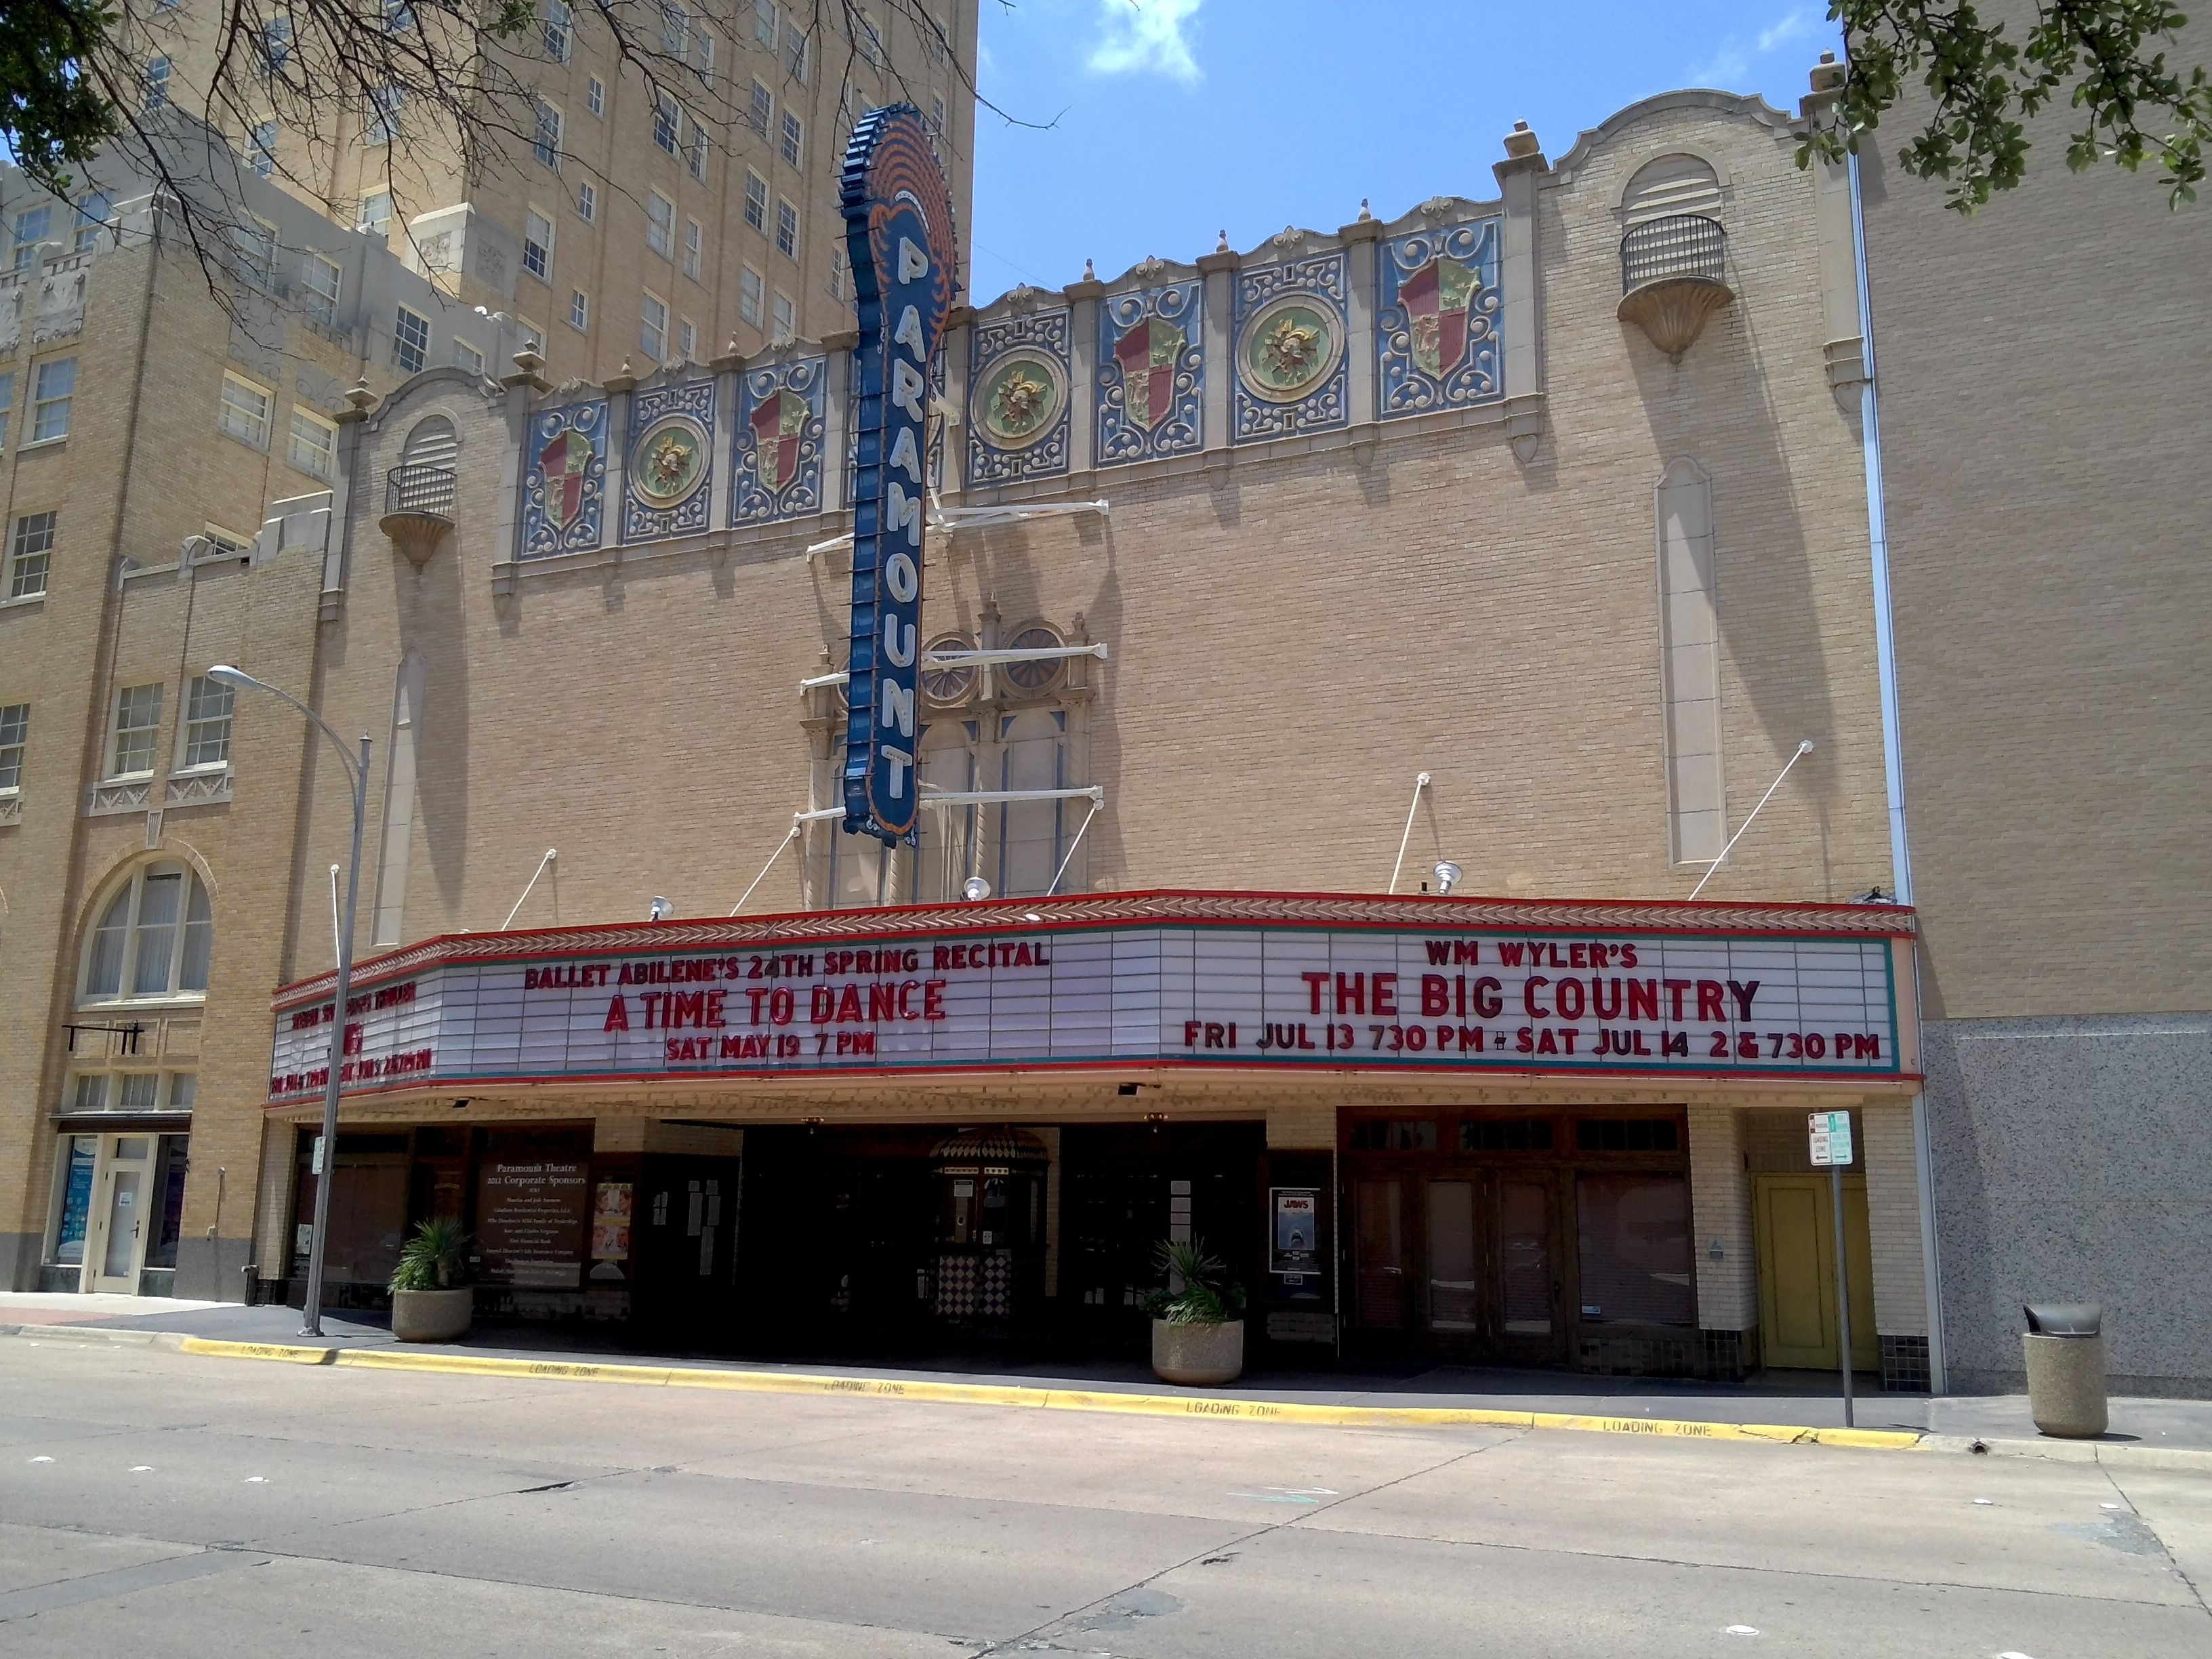 Paramount In Downtown Abilene Texas Abilene Texas Big Country Hometown